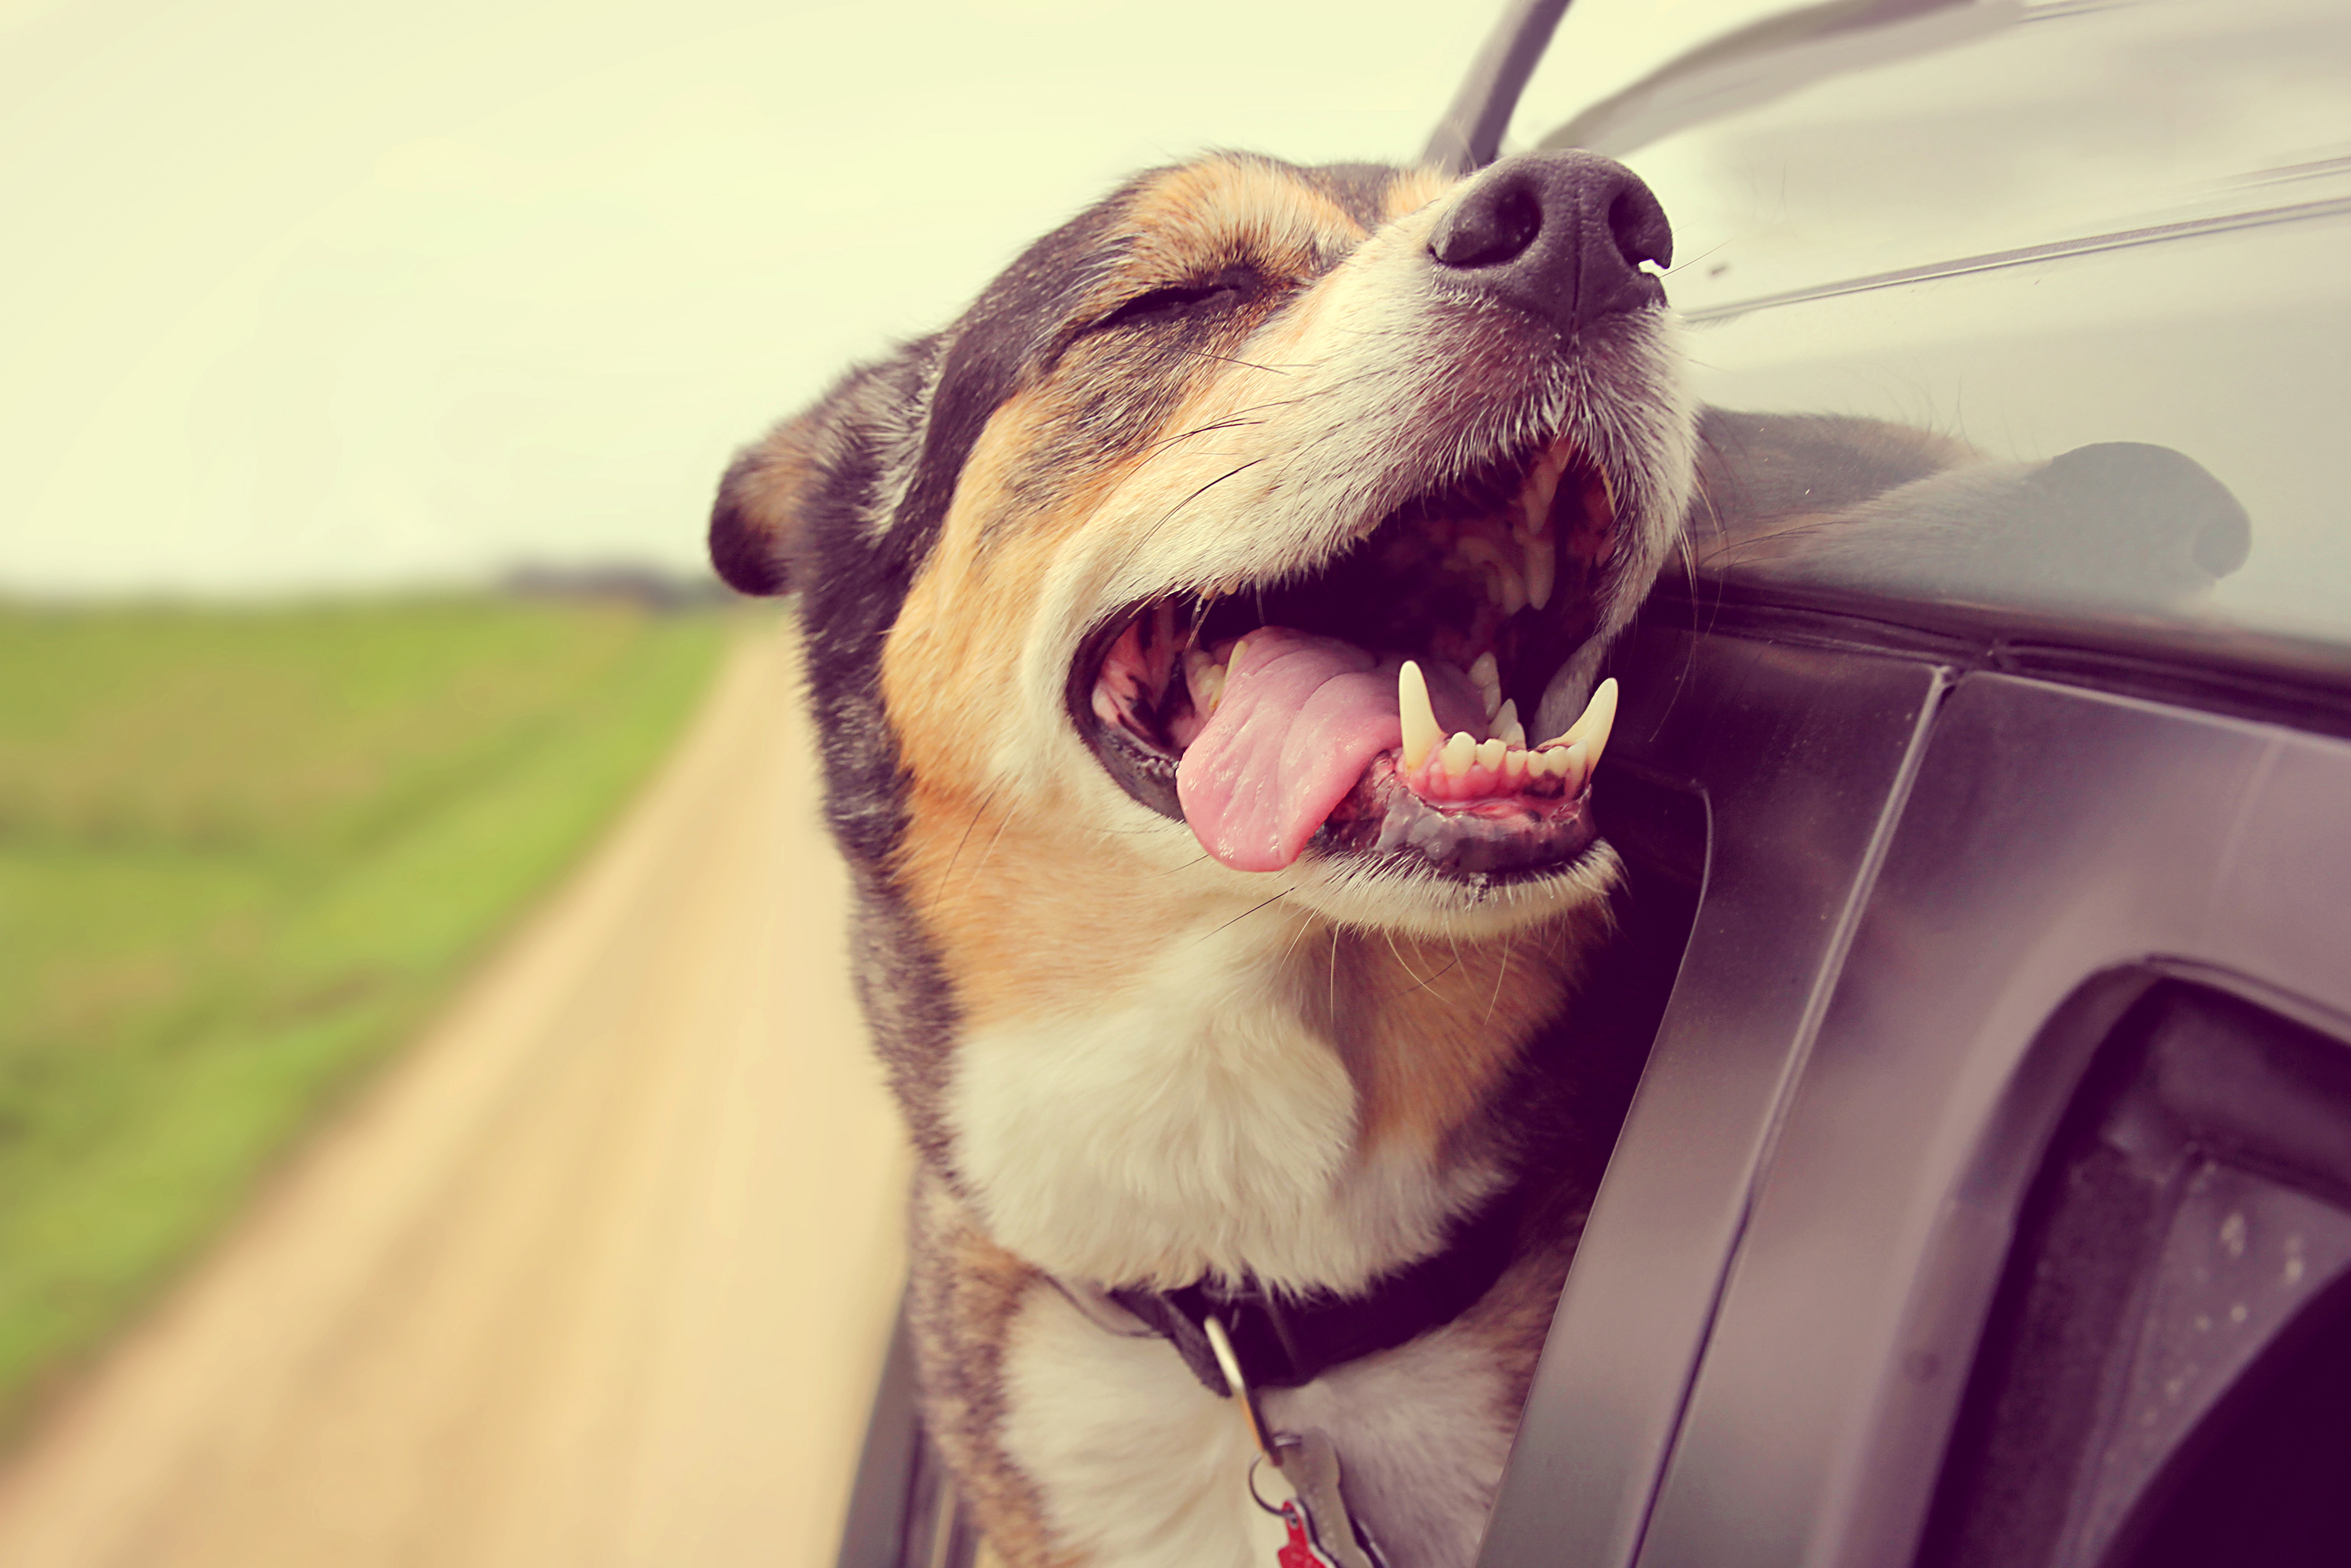 Car Safety for Pets - Woofs and Wags